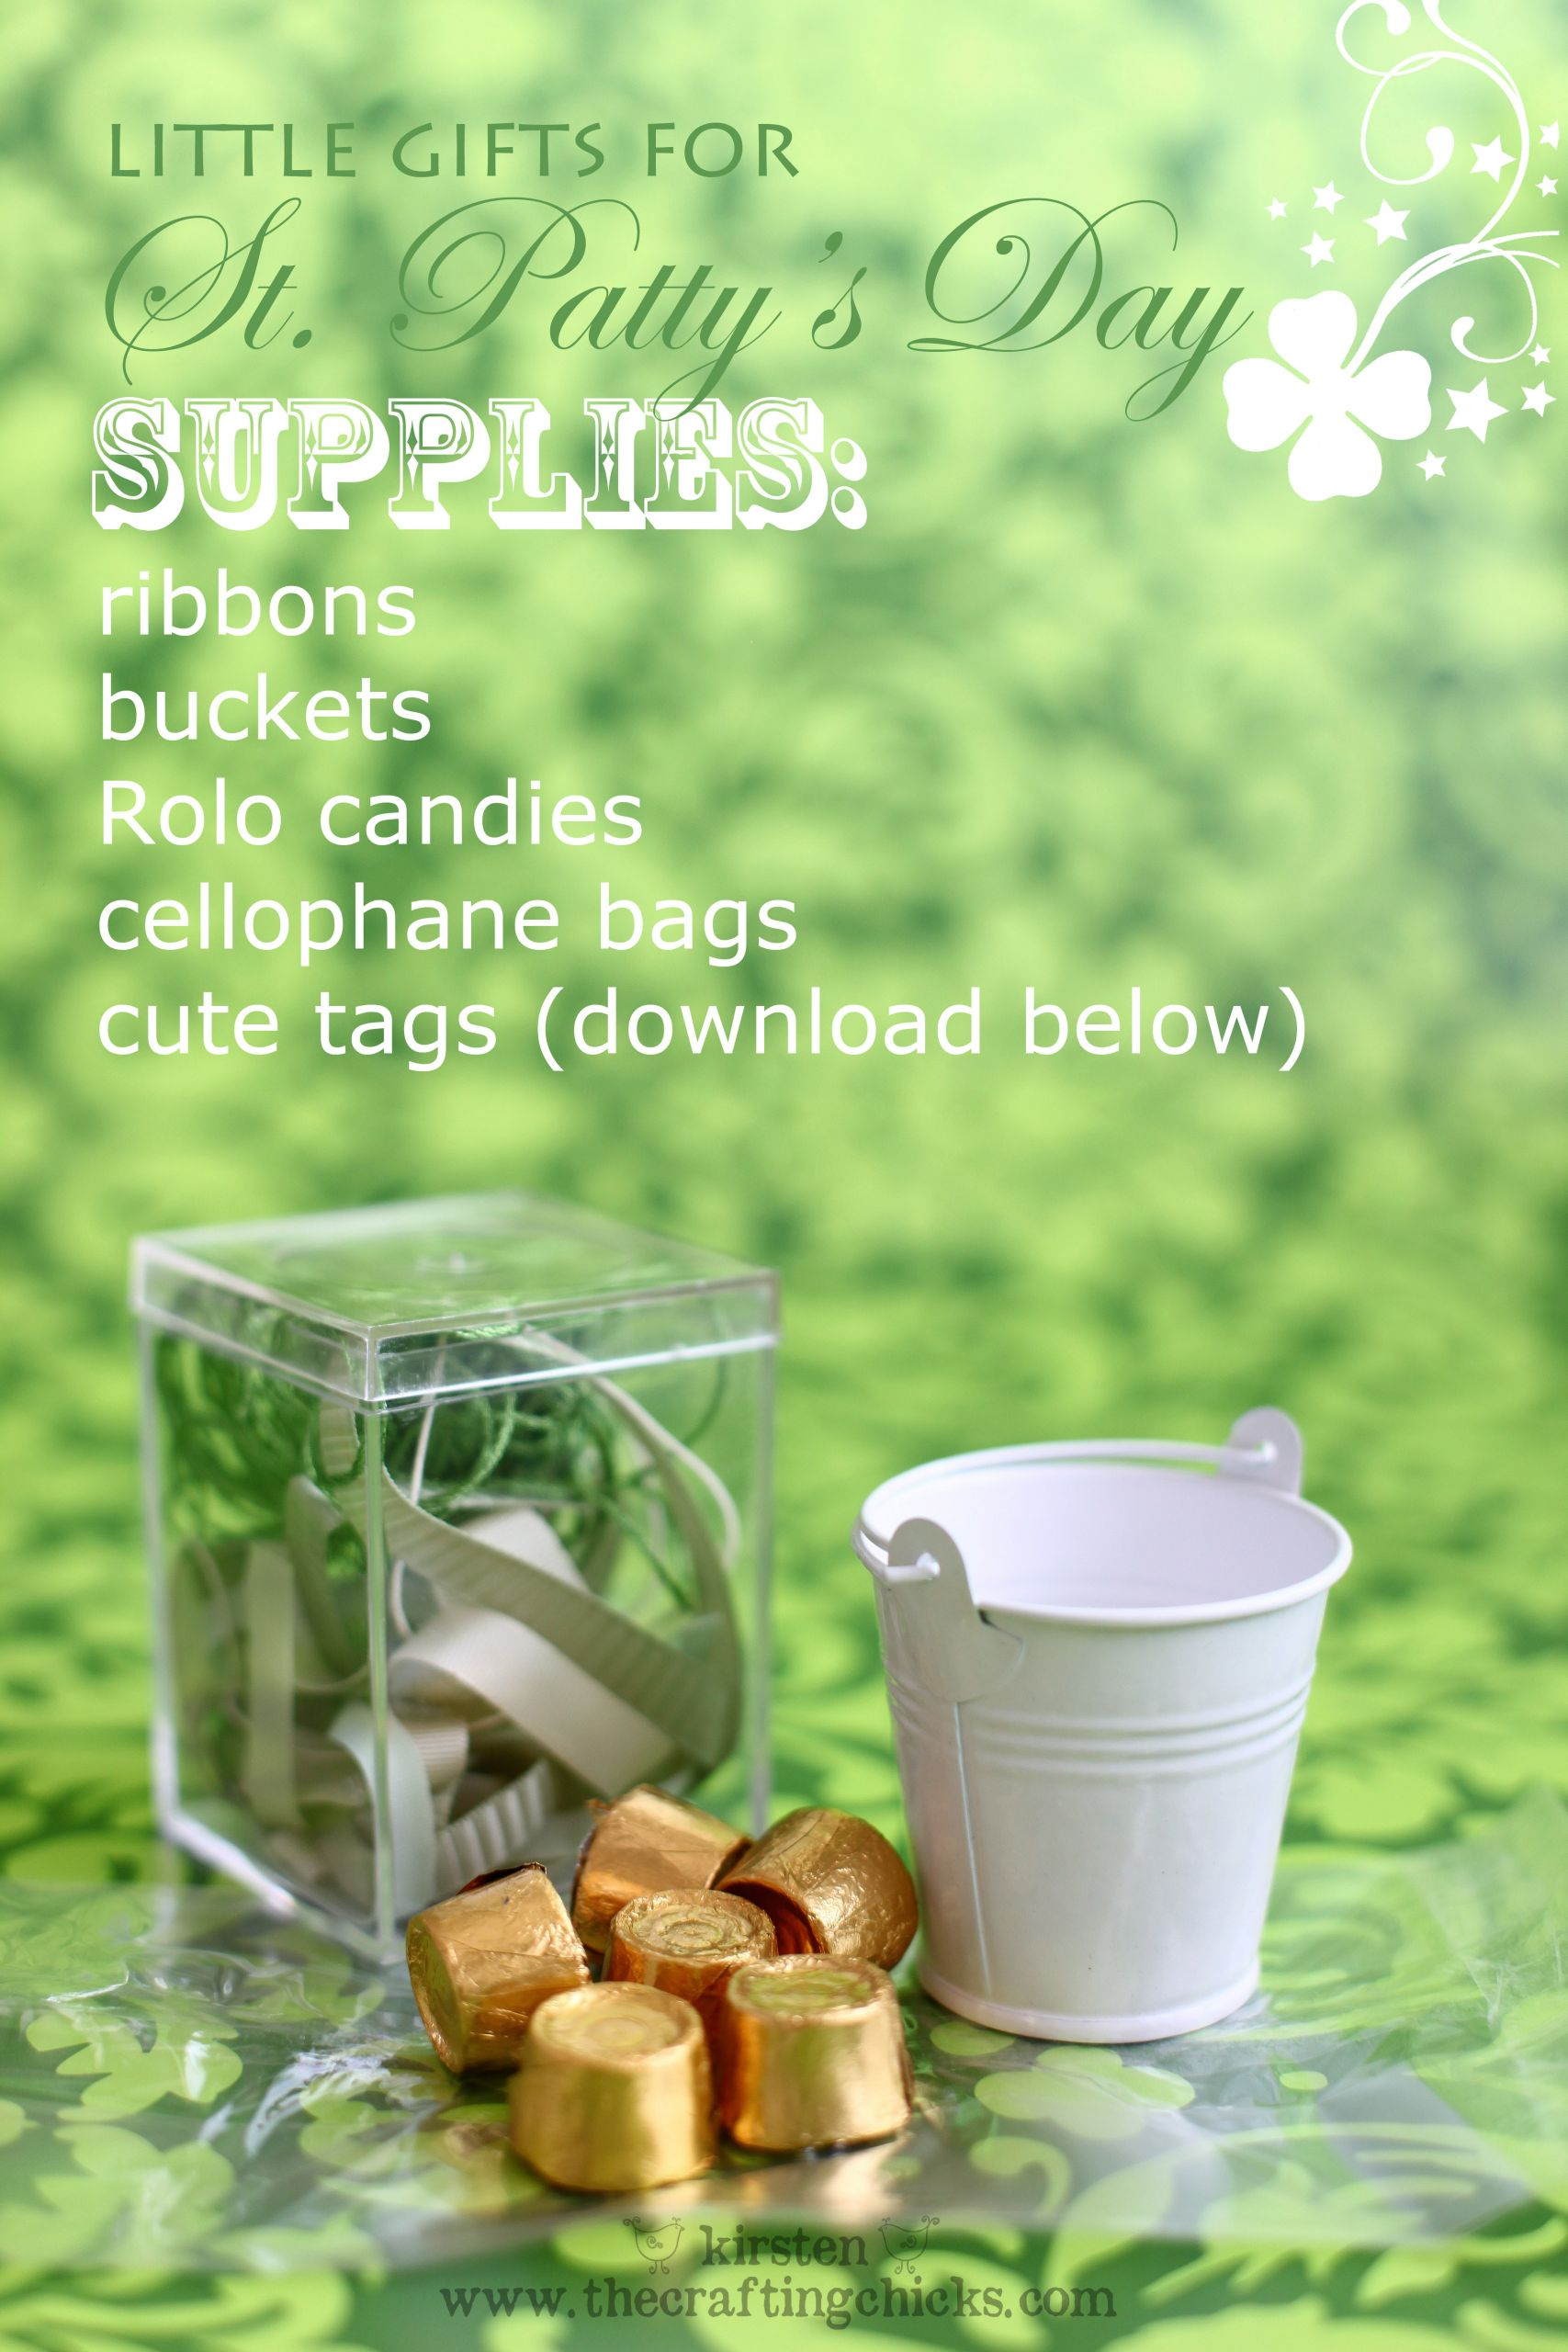 St Patrick's Day Gifts  Little Gifts for St Patrick s Day Free Downloads